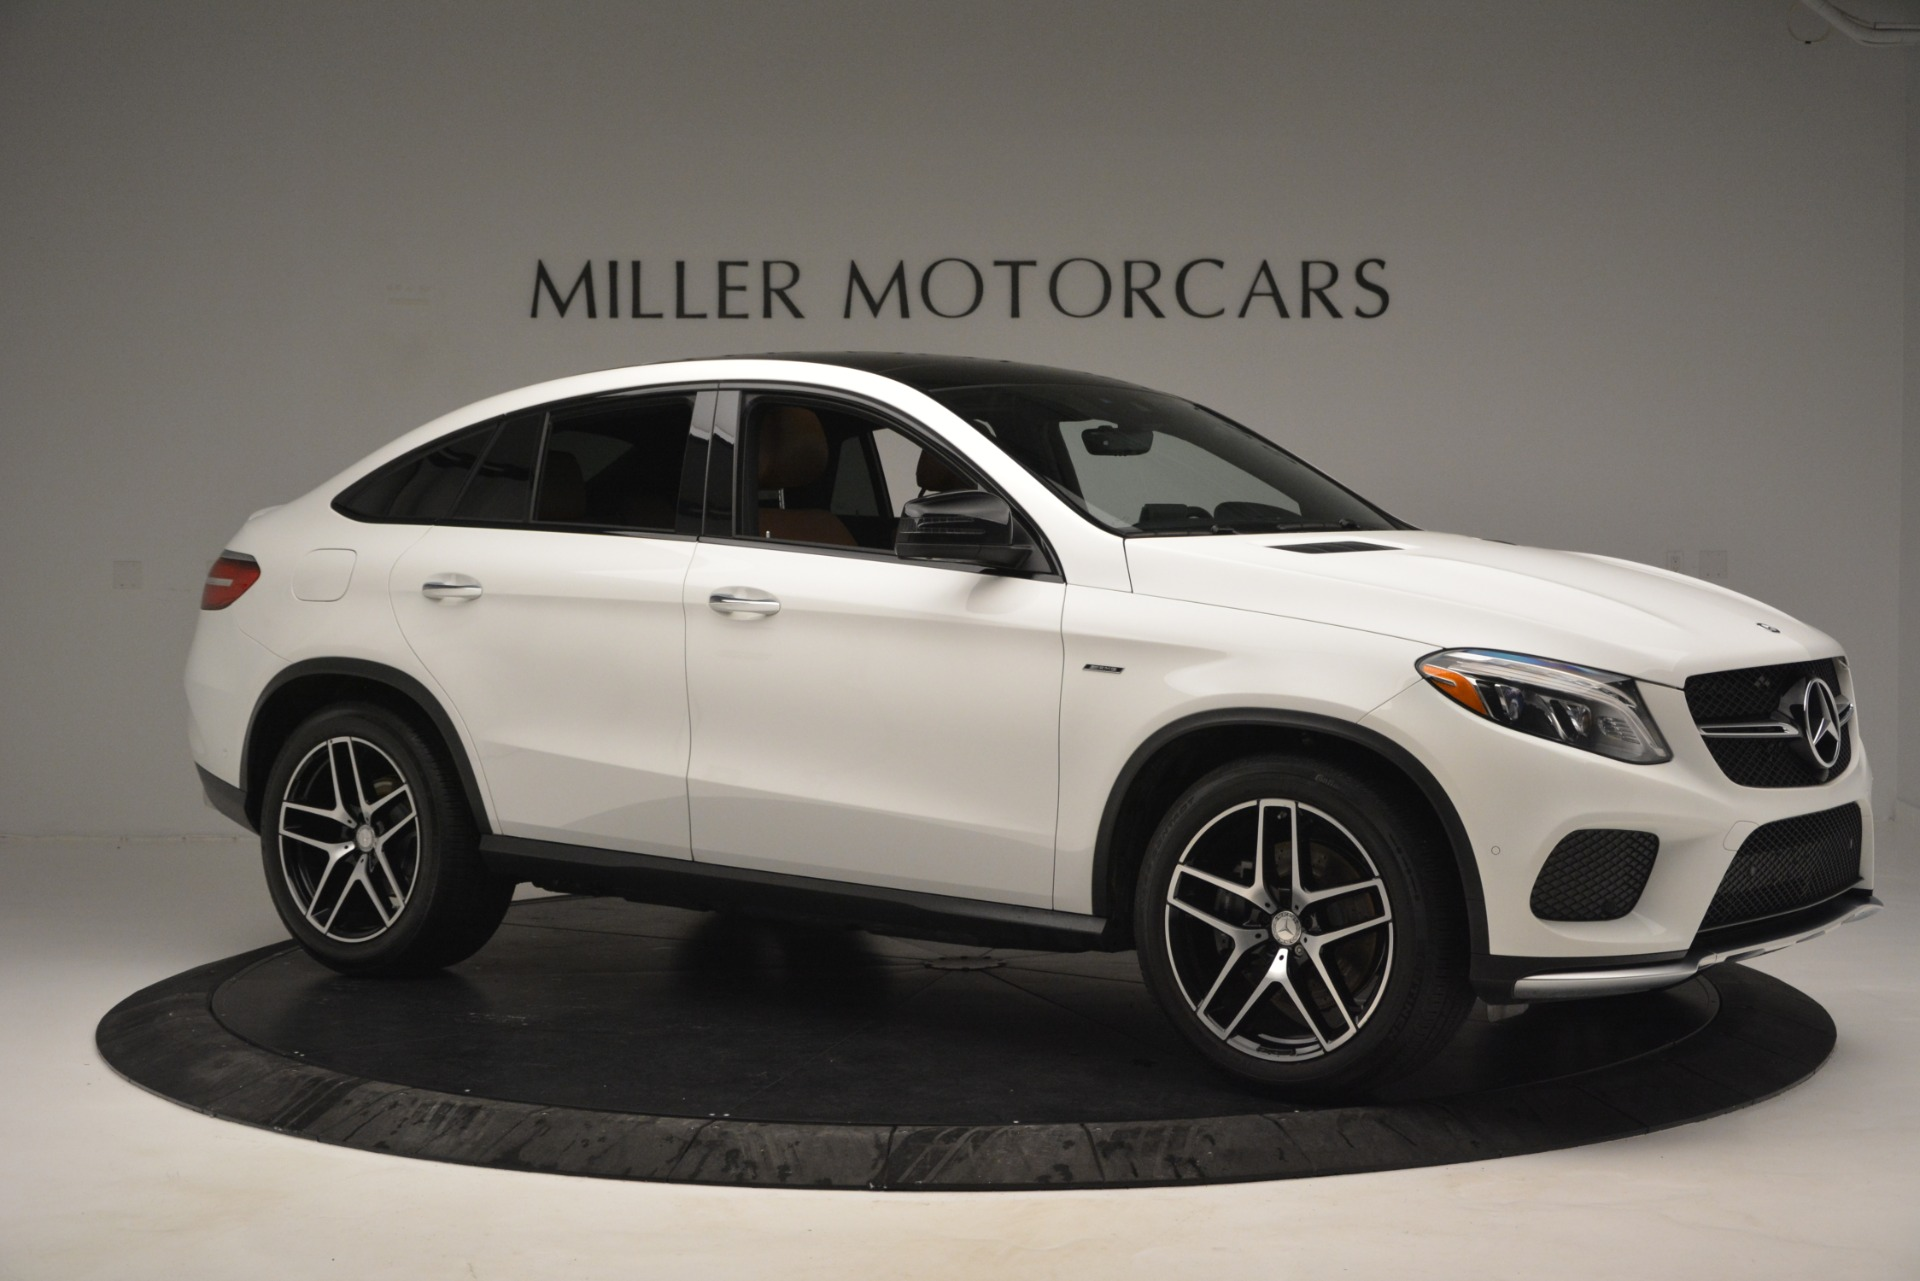 Used 2016 Mercedes-Benz GLE 450 AMG Coupe 4MATIC For Sale In Greenwich, CT 2787_p10